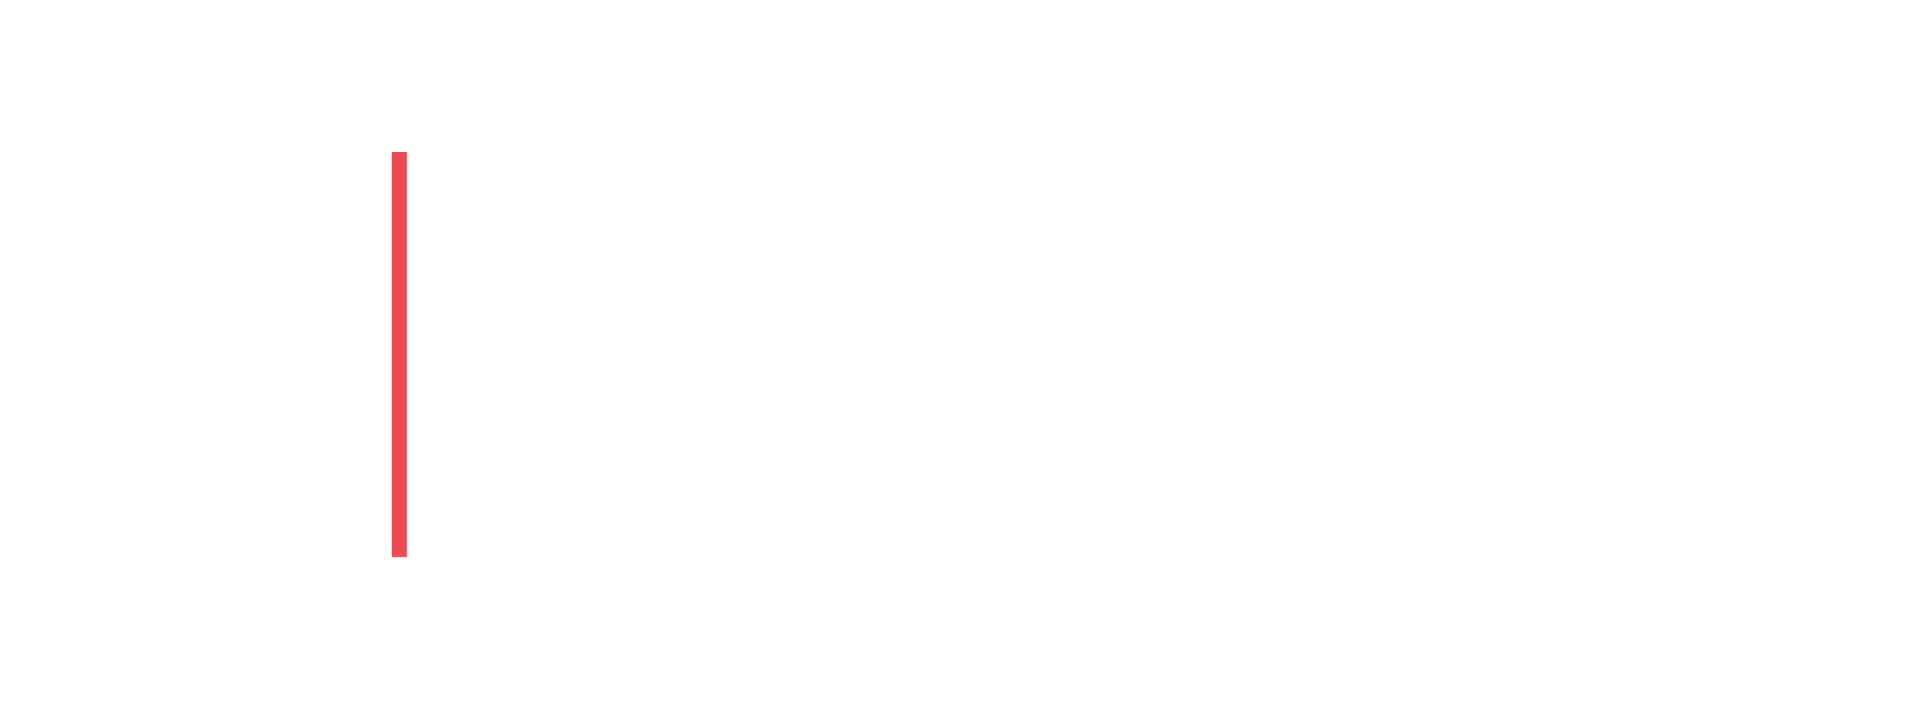 salvatore-addeo-mixing-mastering-engineer